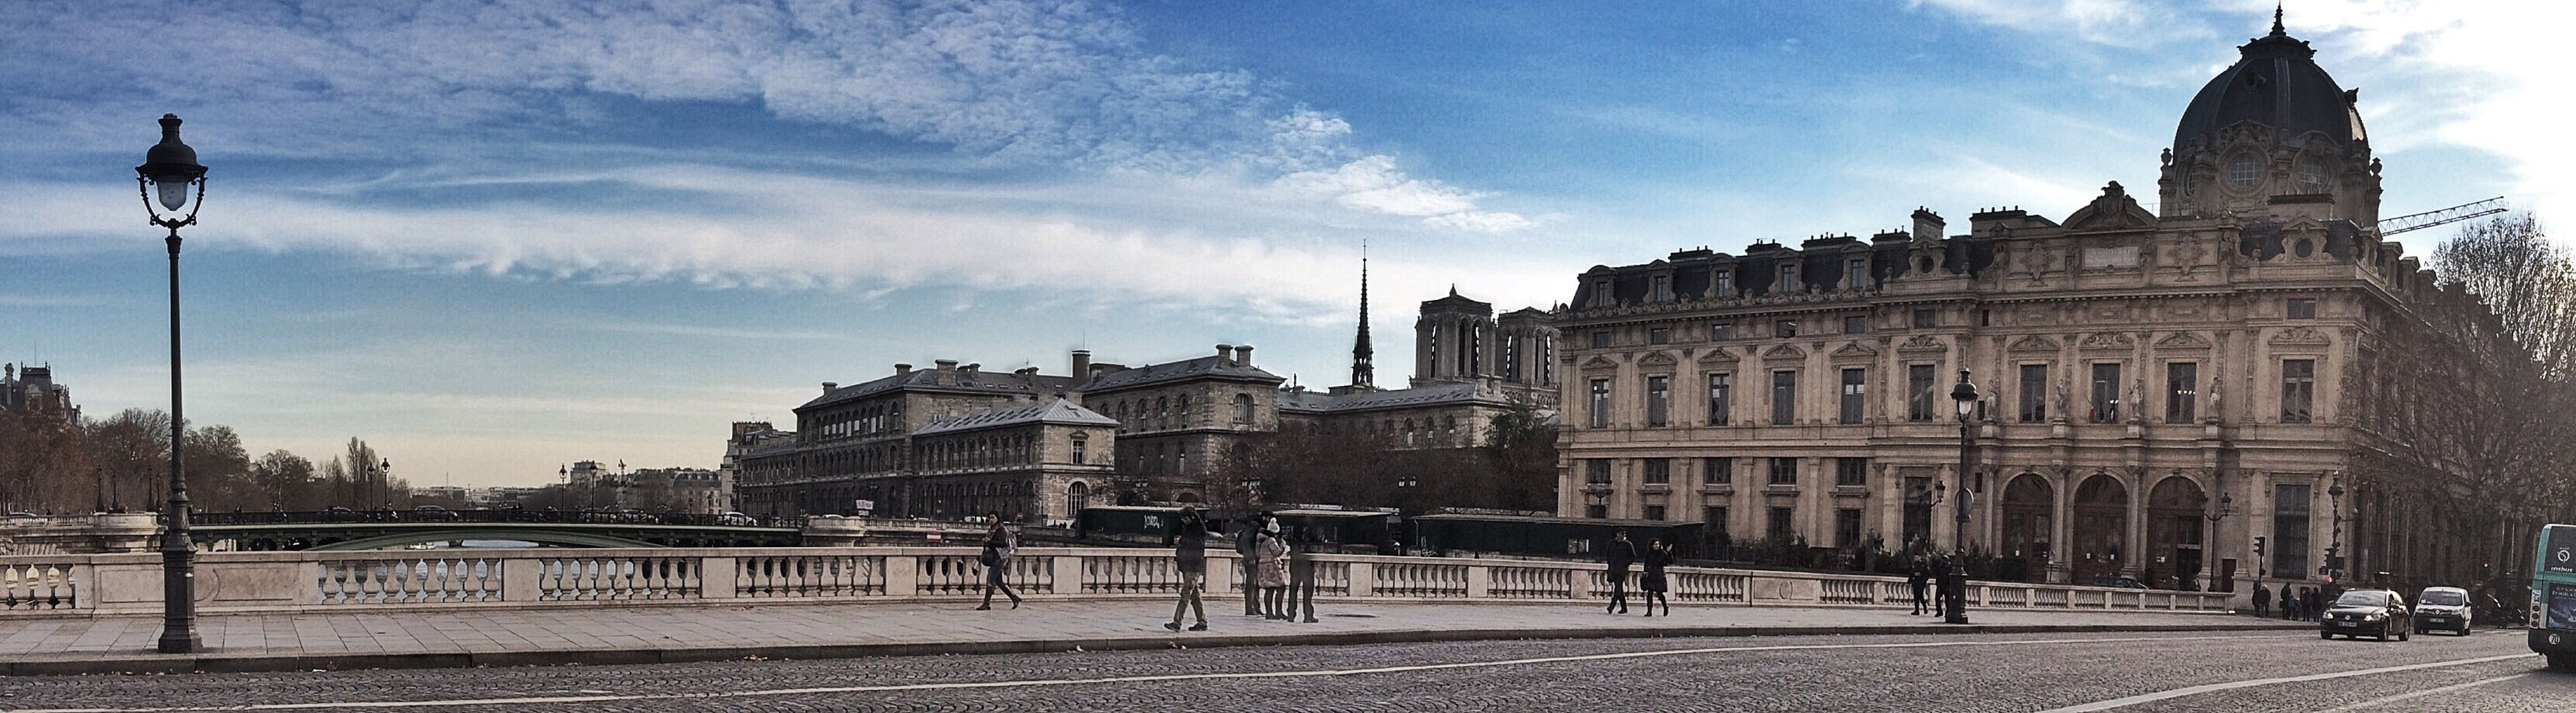 architecture, building exterior, built structure, sky, famous place, travel destinations, tourism, city, international landmark, large group of people, history, capital cities, travel, cloud - sky, town square, incidental people, tourist, city life, person